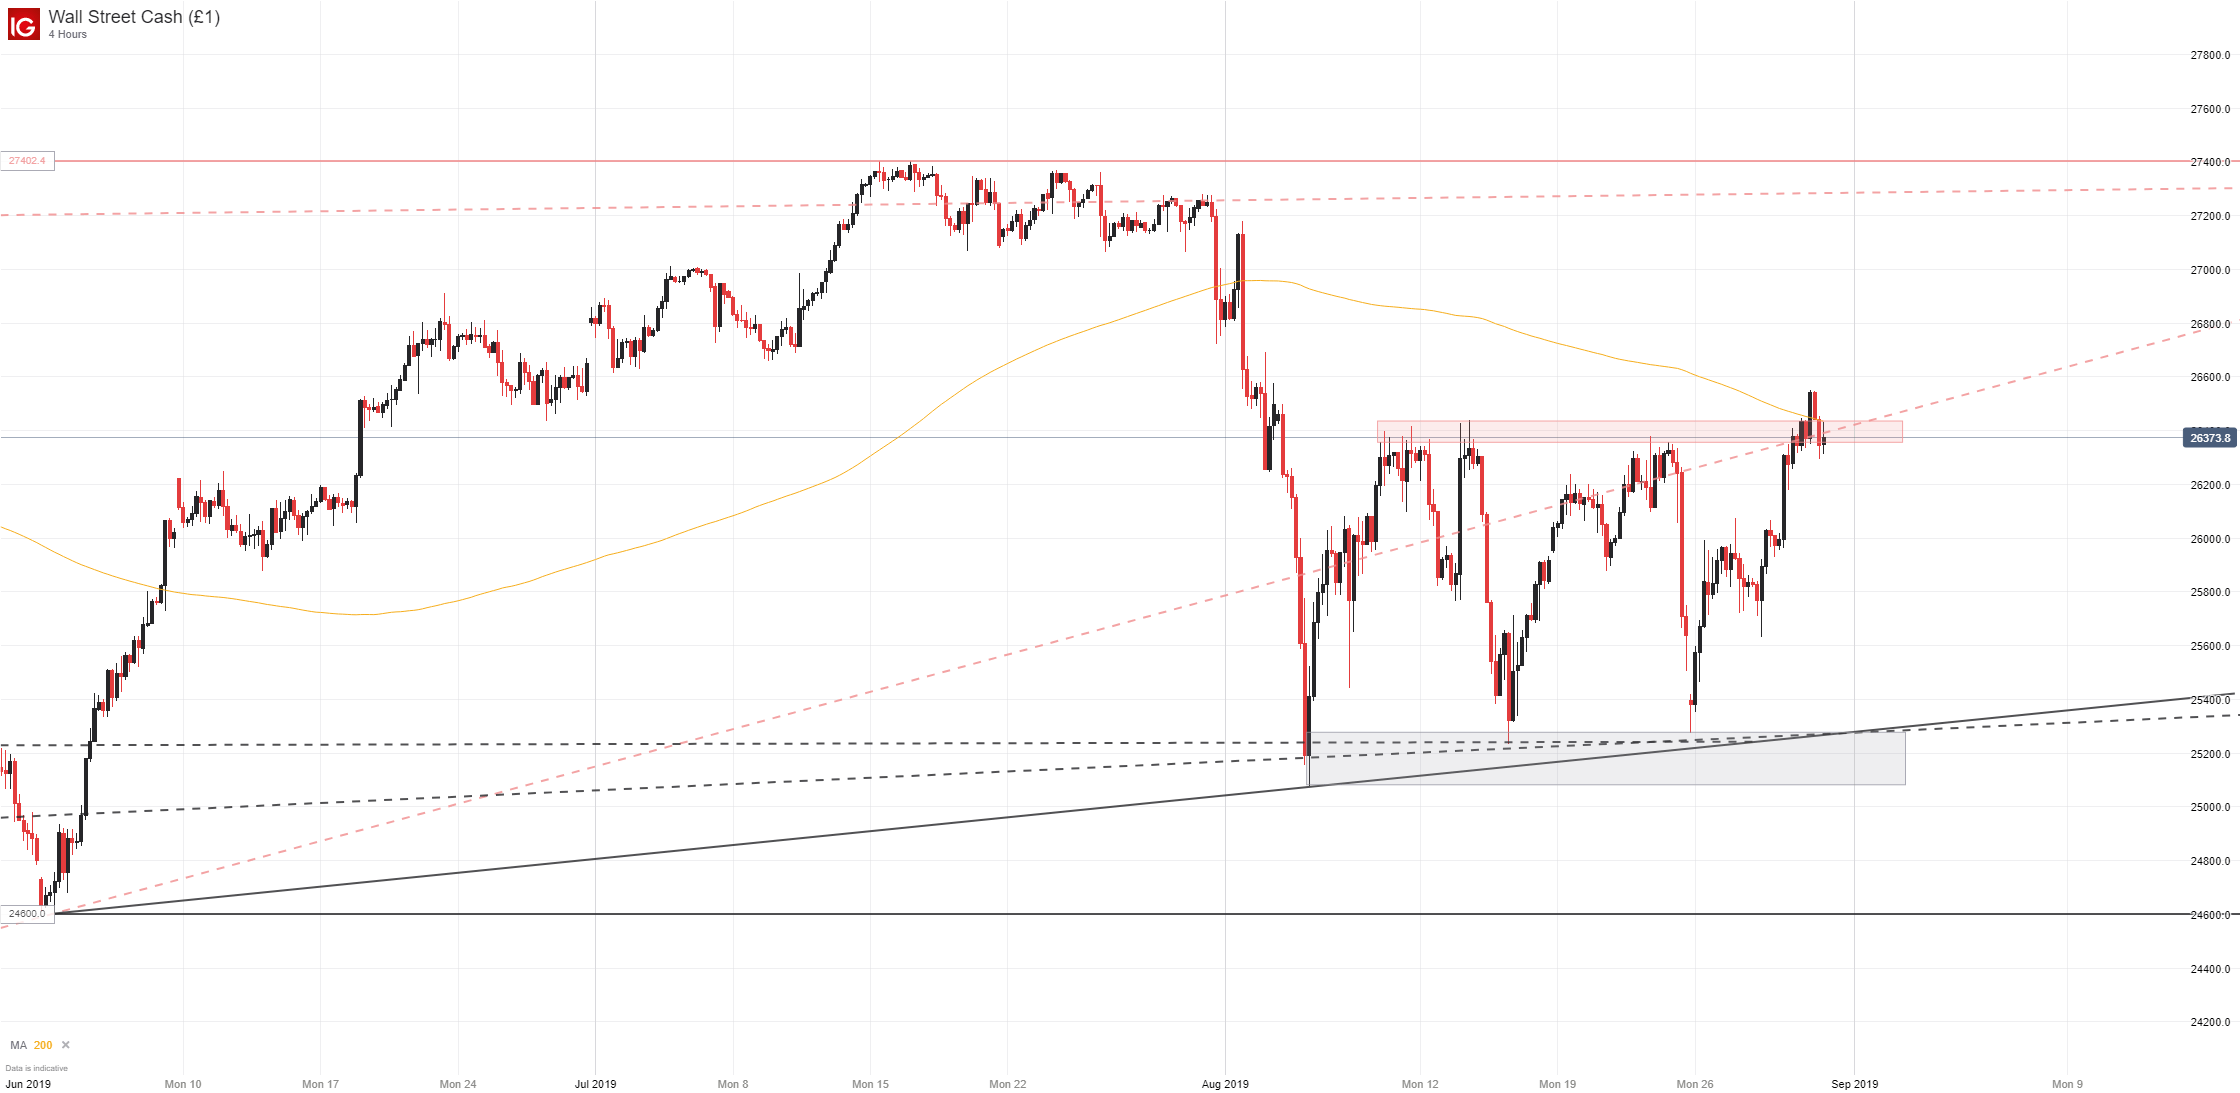 Dow Jones, DAX 30, FTSE 100, CAC 40 Technical Forecasts